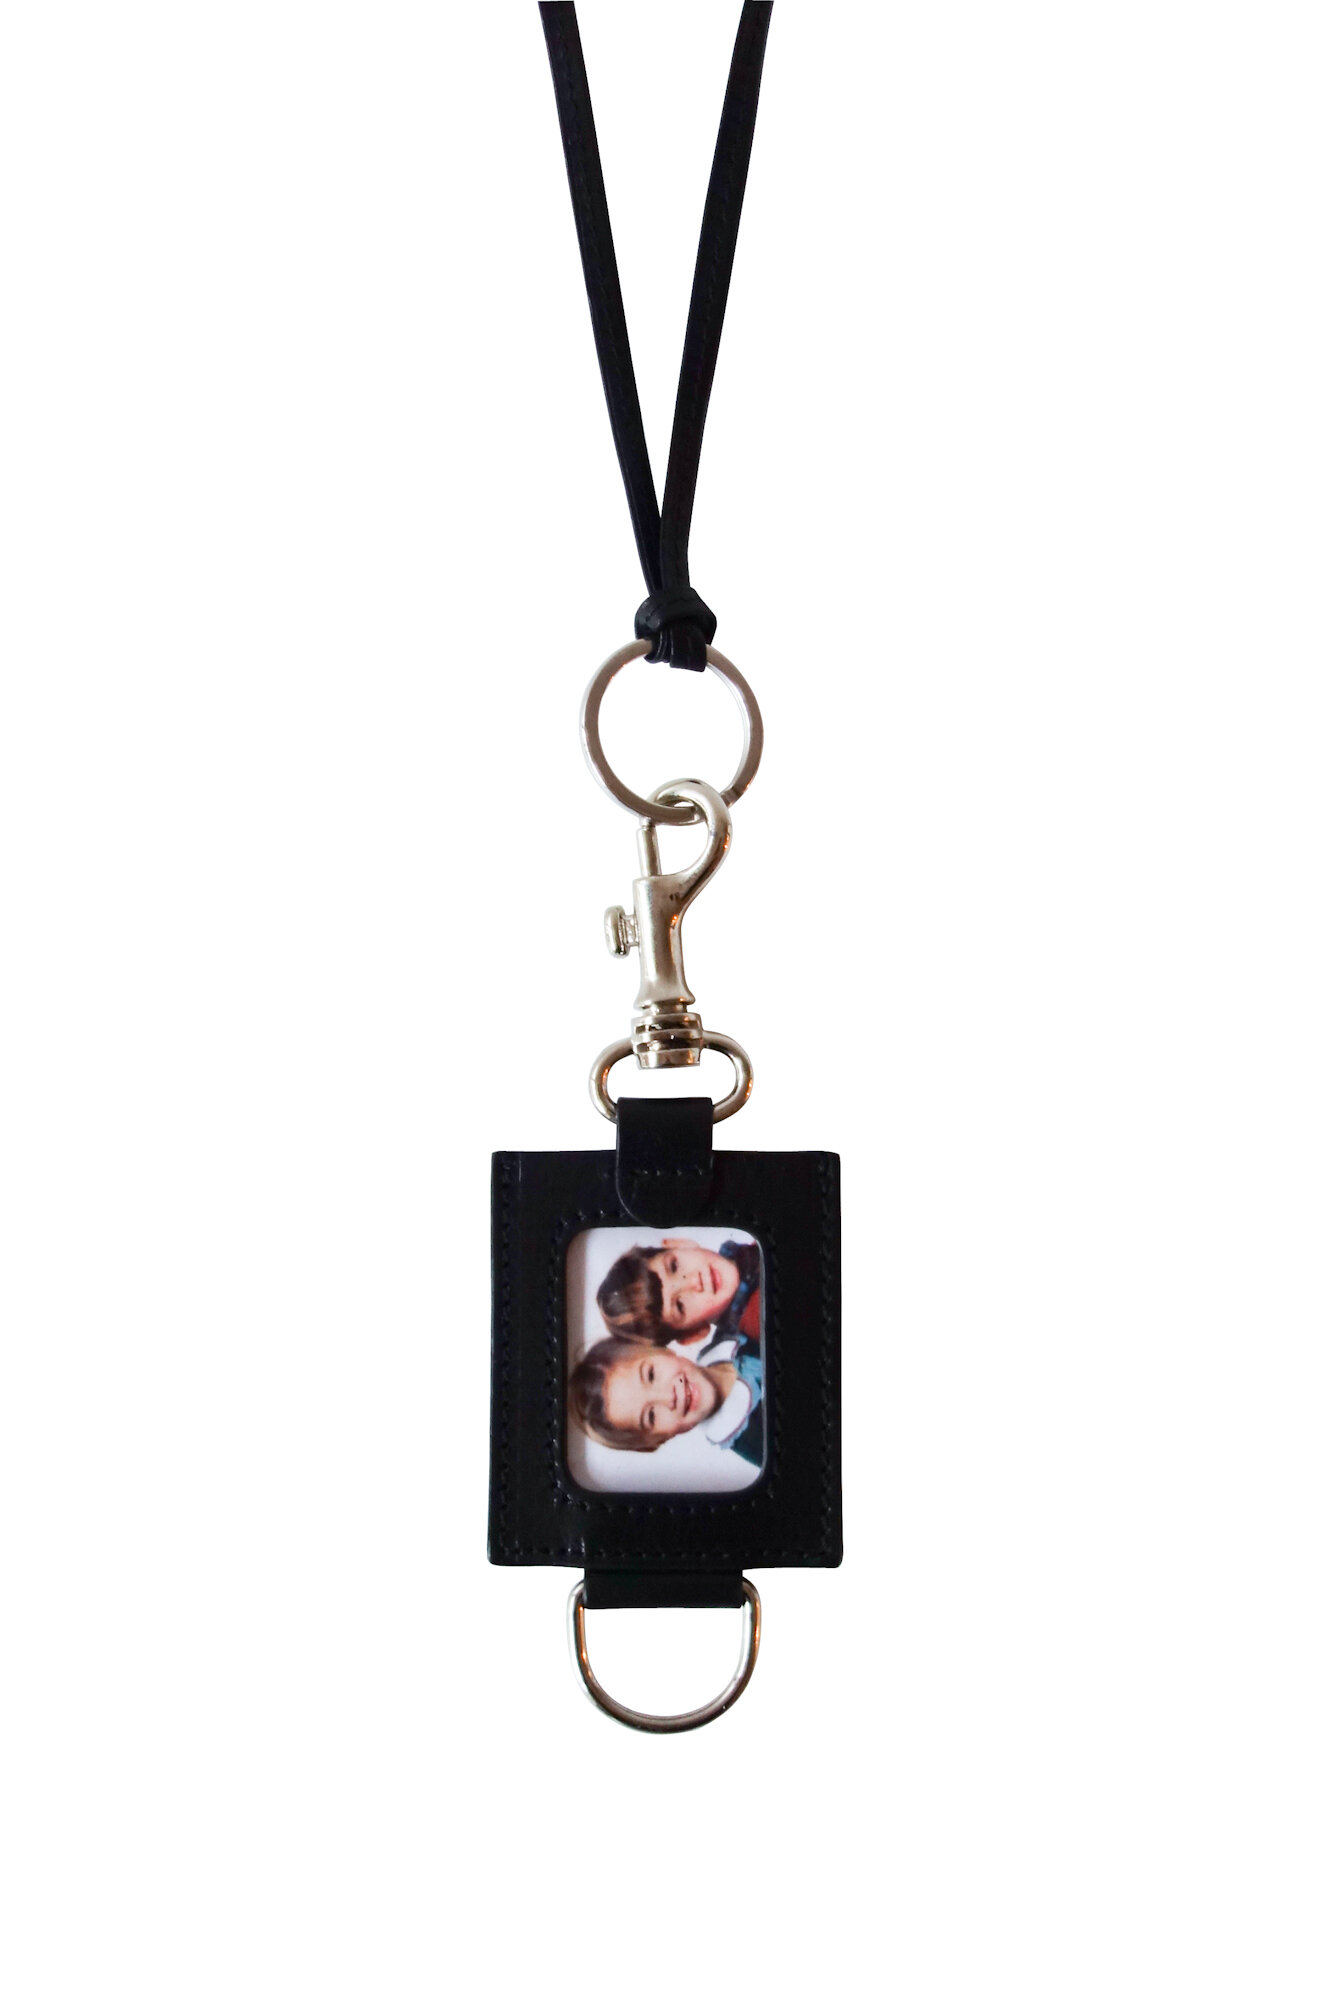 Photo Holder $290 - Can be worn as a necklace or attached to bags, pants etc.Detachable leather neck strap, adjustable lengthCarabiner attachment | D-RingLeather | PVCMade in Italy